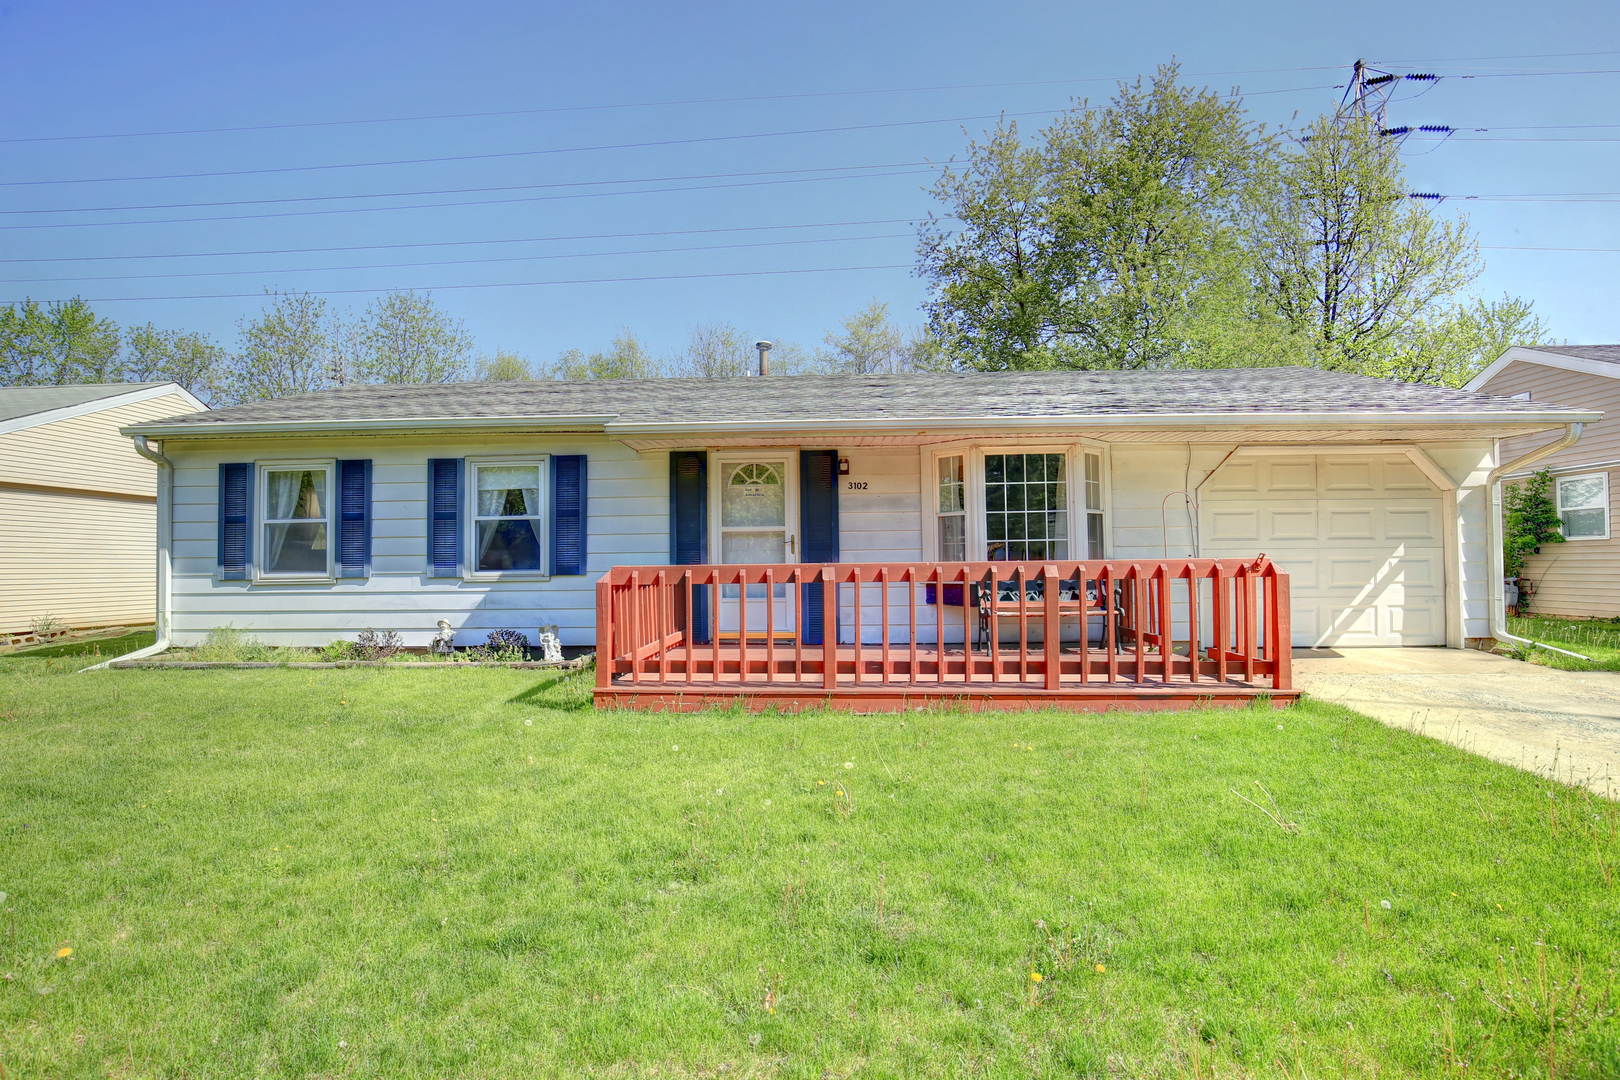 3102 Ridgewood Court, Champaign in Champaign County, IL 61821 Home for Sale